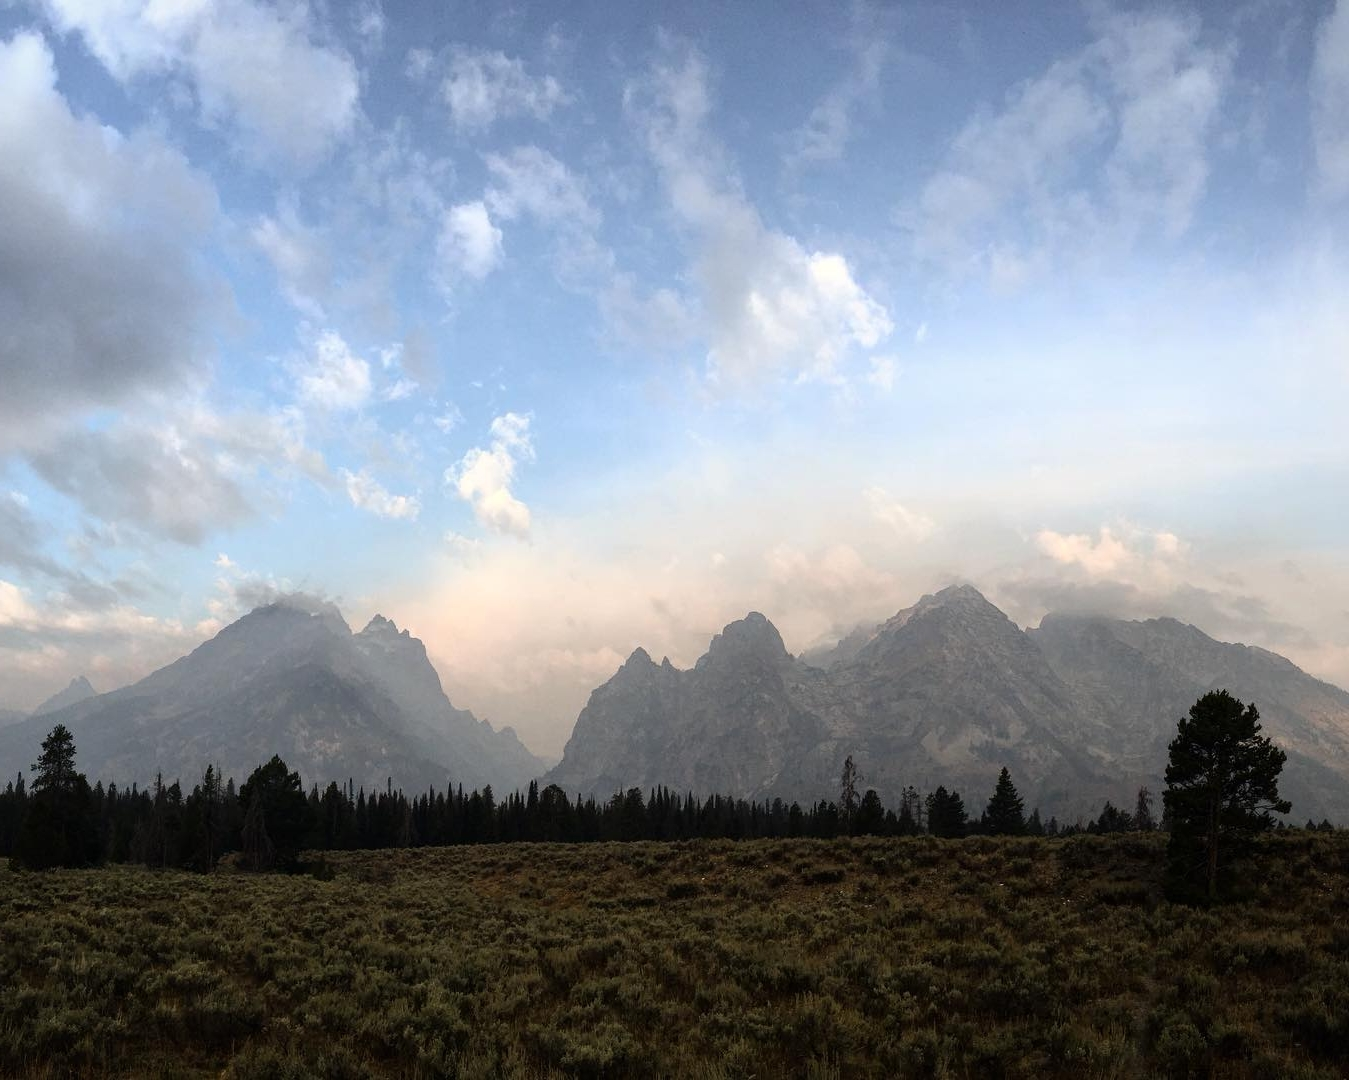 Spent_the_weekend_in__jacksonhole__wyoming_came_across_this_view_of_the__tetonrange_and__cascadecanyon._smoke_filled_the_skies_from_the_Berry_fire_at_the_north_end_of__gtnp.jpg